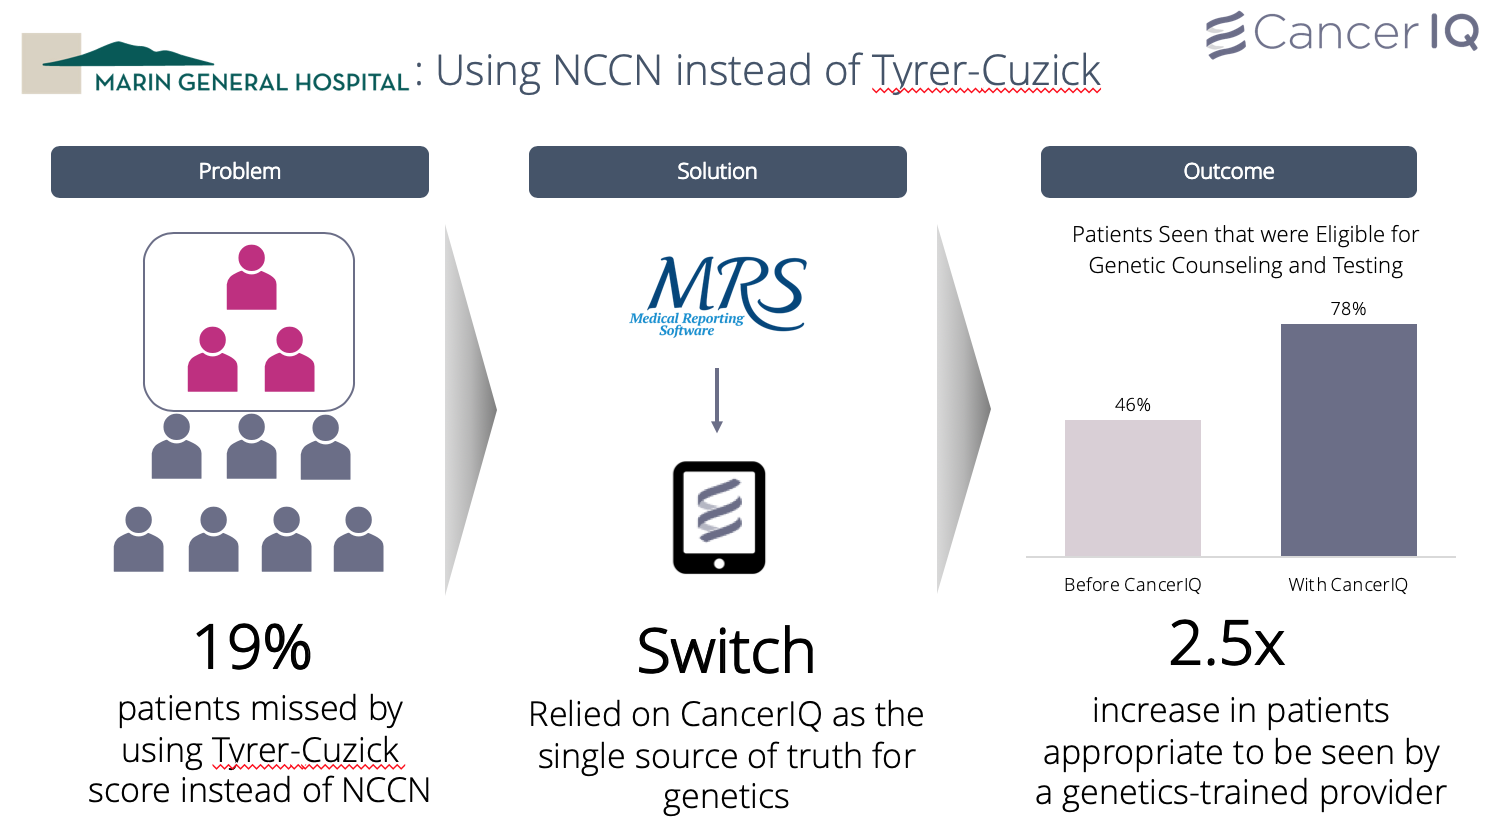 Using NCCN guidelines instead of Tyrer-Cuzick